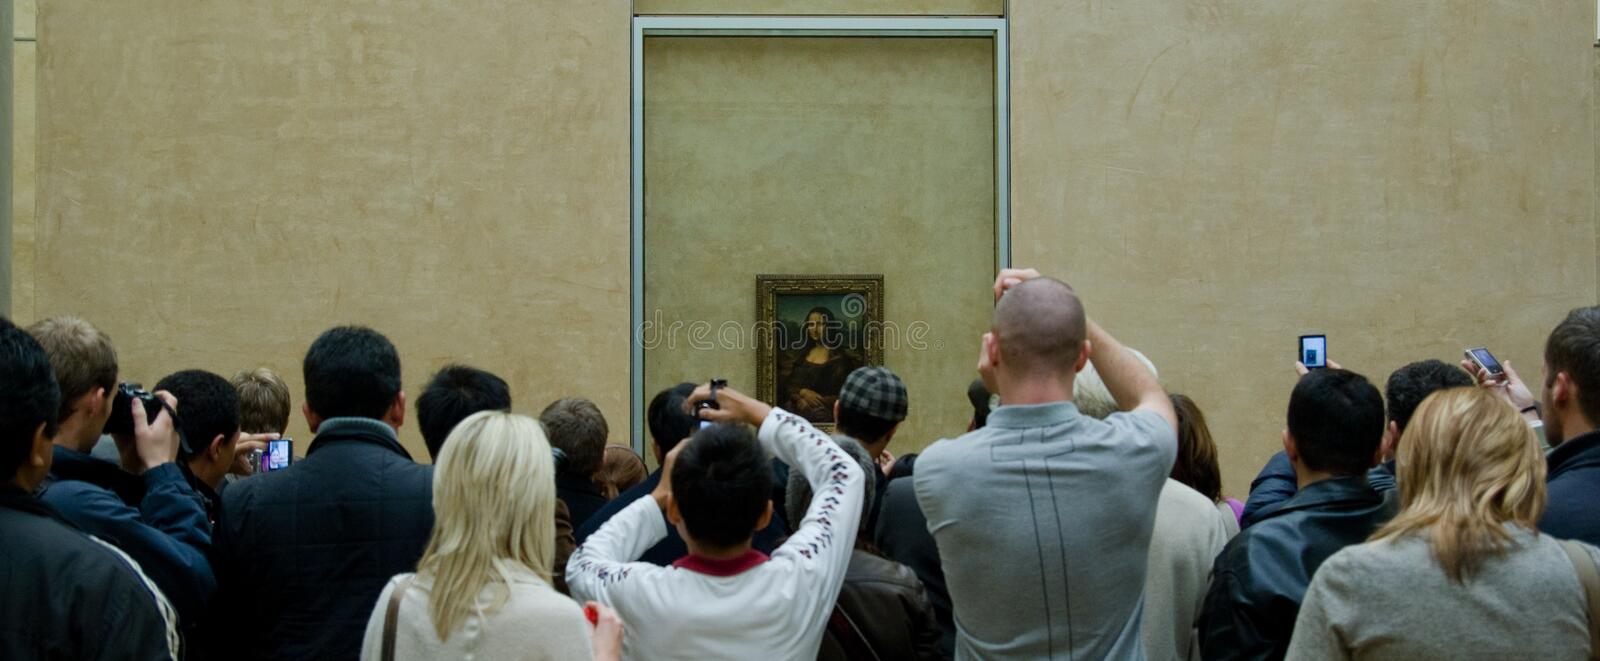 Masse Mona-Lisa stockfoto